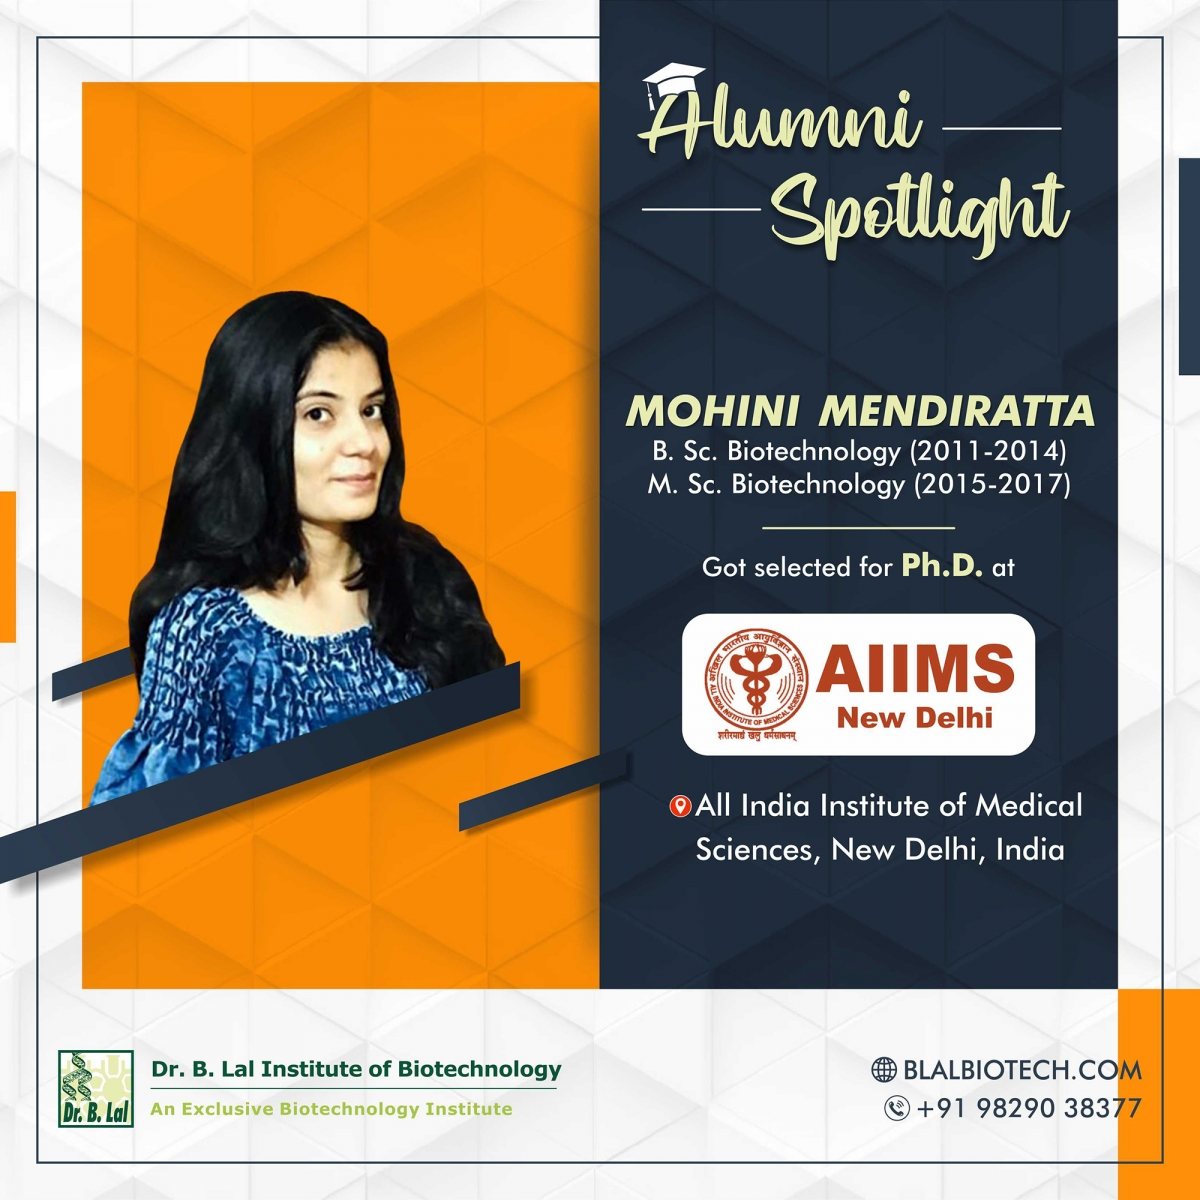 Ms. Mohini Mendiratta | Selected for Ph.D. at All India Institute of Medical Sciences, New Delhi